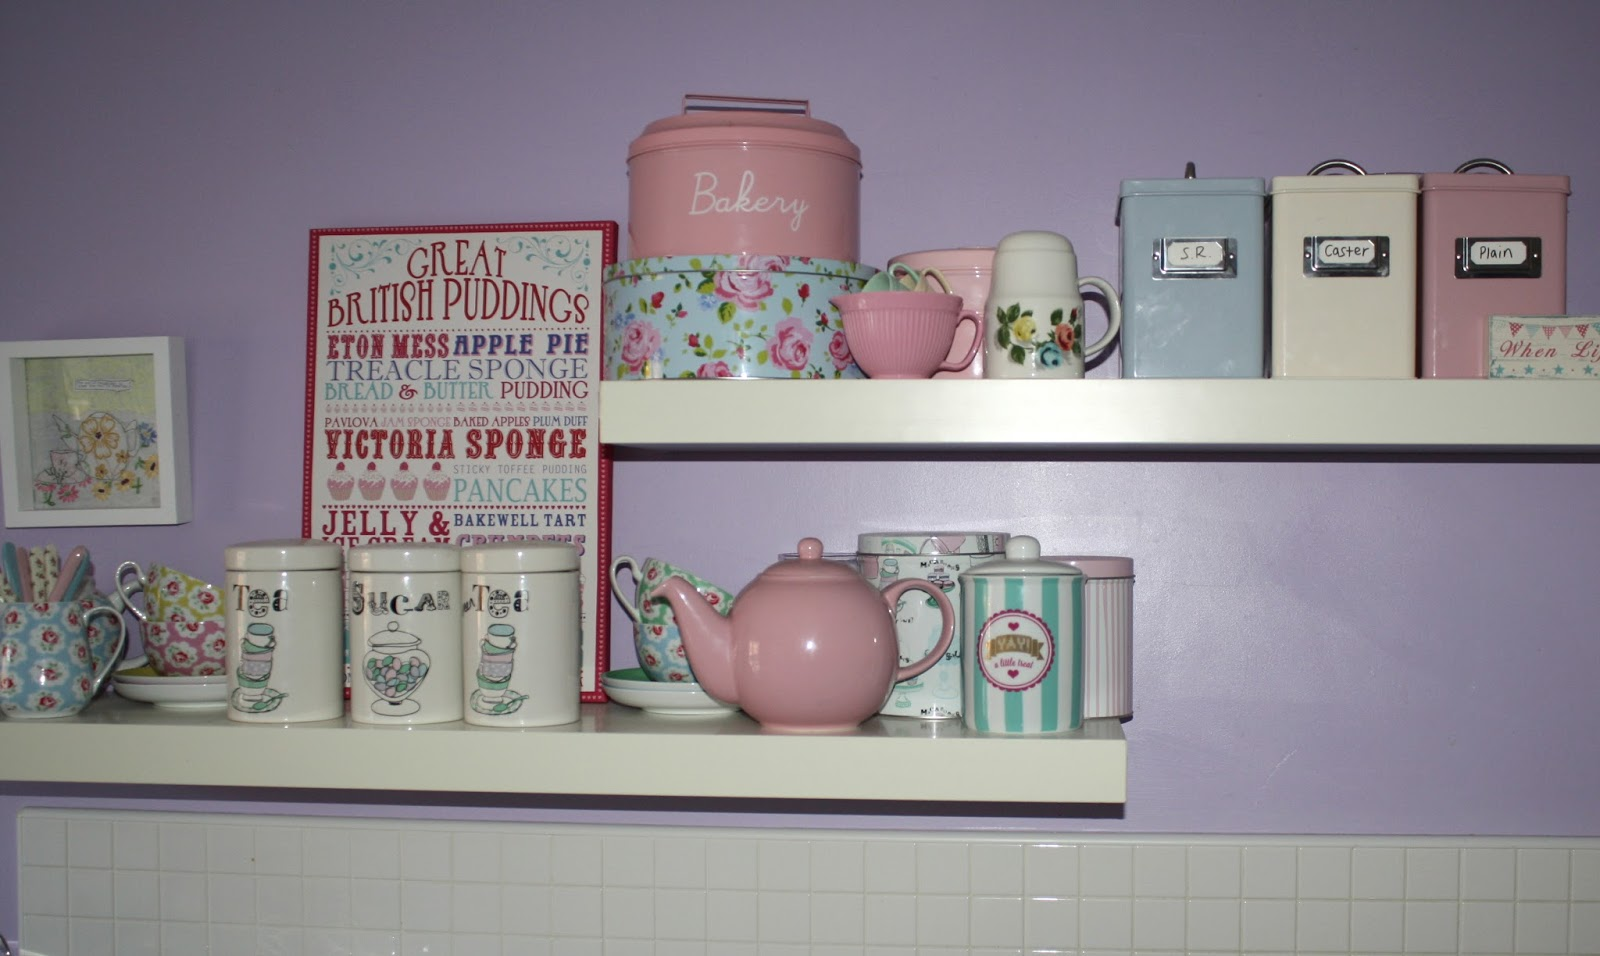 We Have Also Gone Pink With Our Microwave, Itu0027s Too Cute! I Love Having Pastel  Kitchen Appliances, Way More Fun.